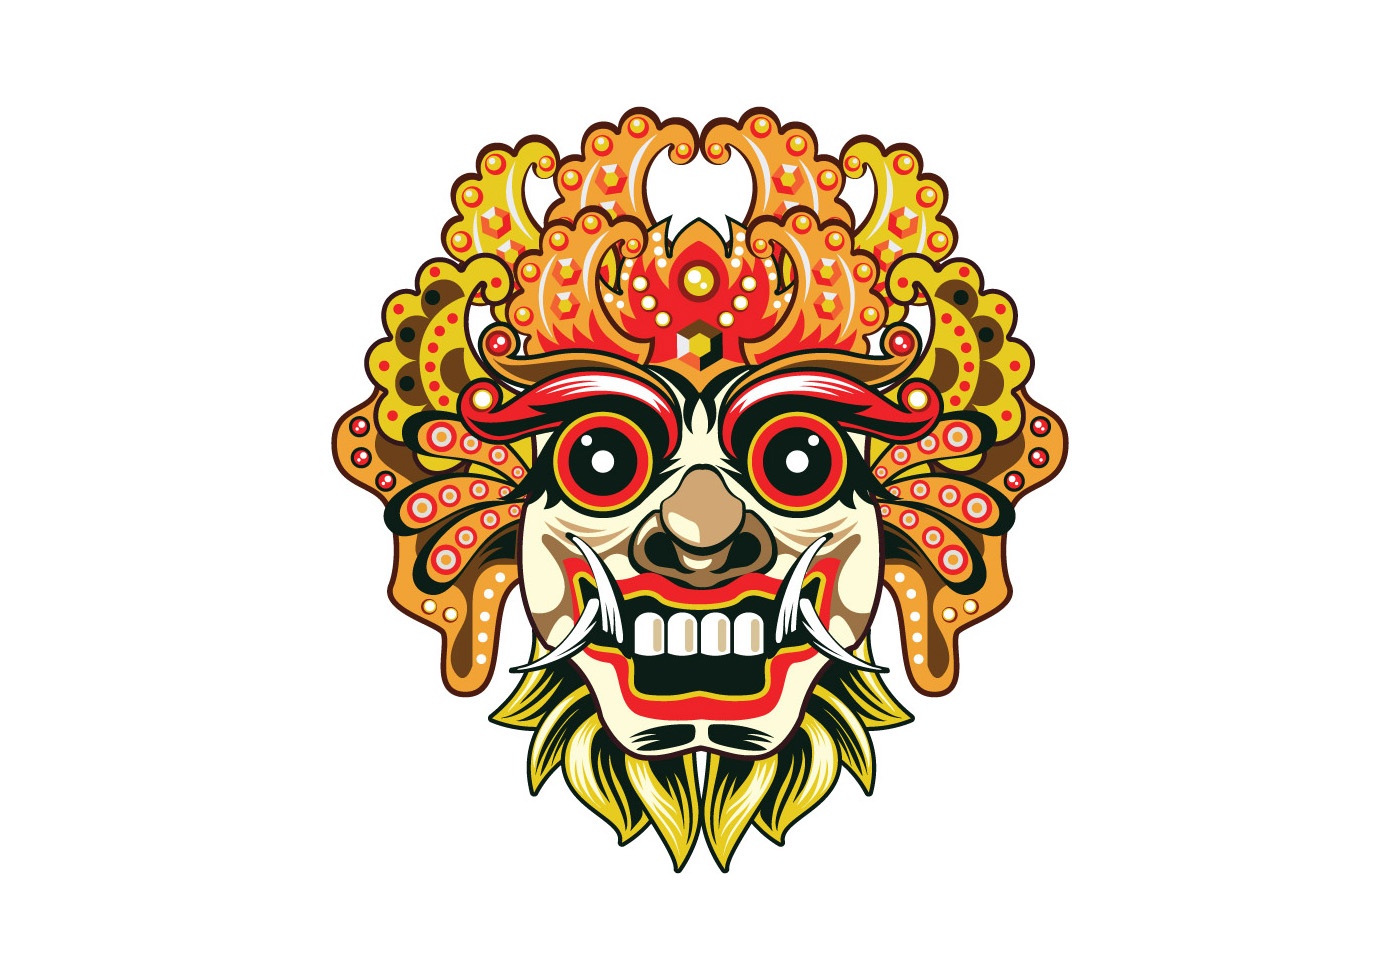 Free Download Png And Vector: Detailed Barong Mask Vector